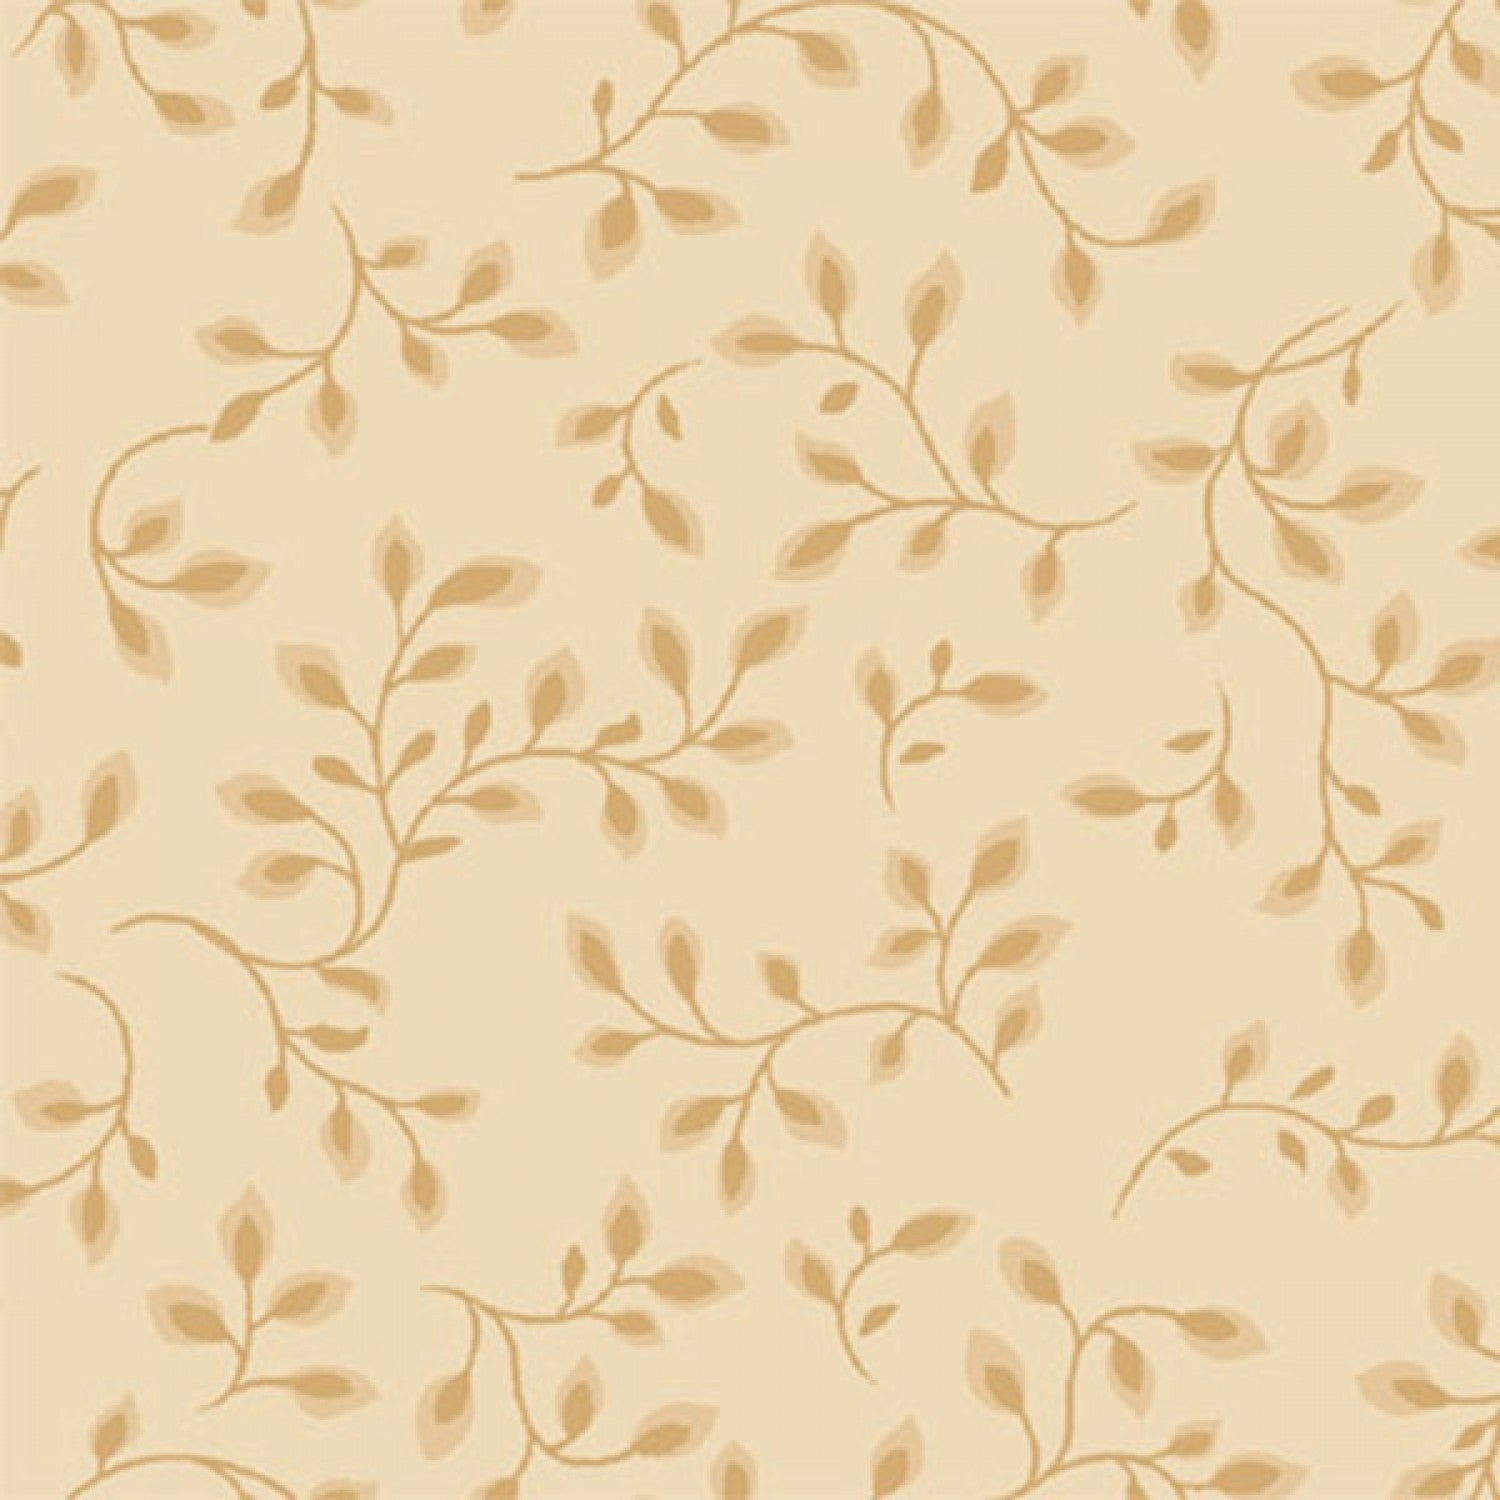 108 Inch Wide Backing Tan/Beige Vine Fabric